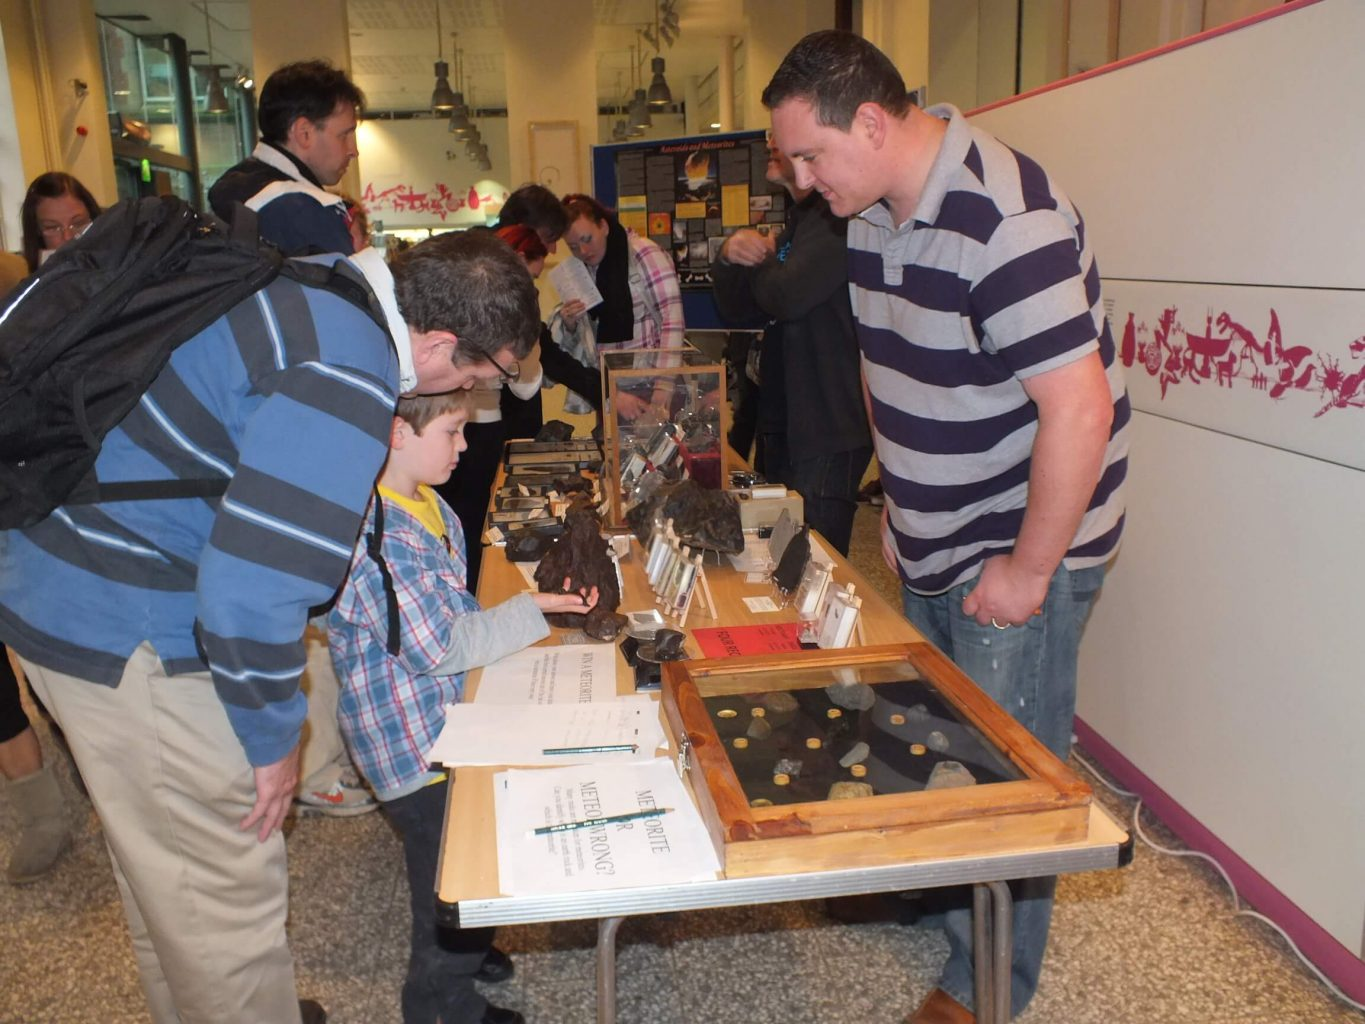 Luther with the popular 'guess the meteorite' competition with meteorites as prizes :-)